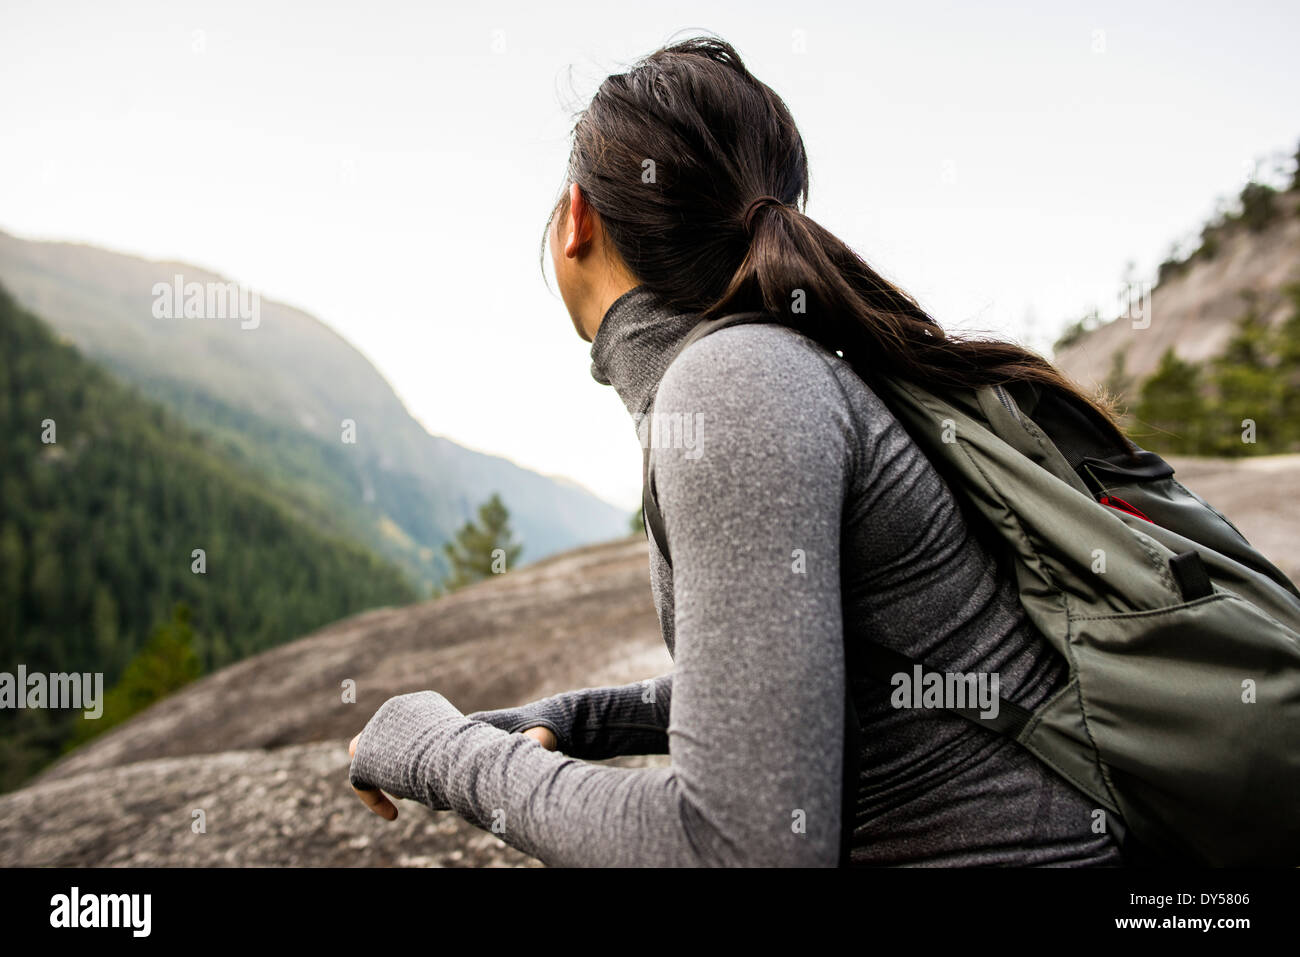 Young woman looking at view, Squamish, British Columbia, Canada Photo Stock